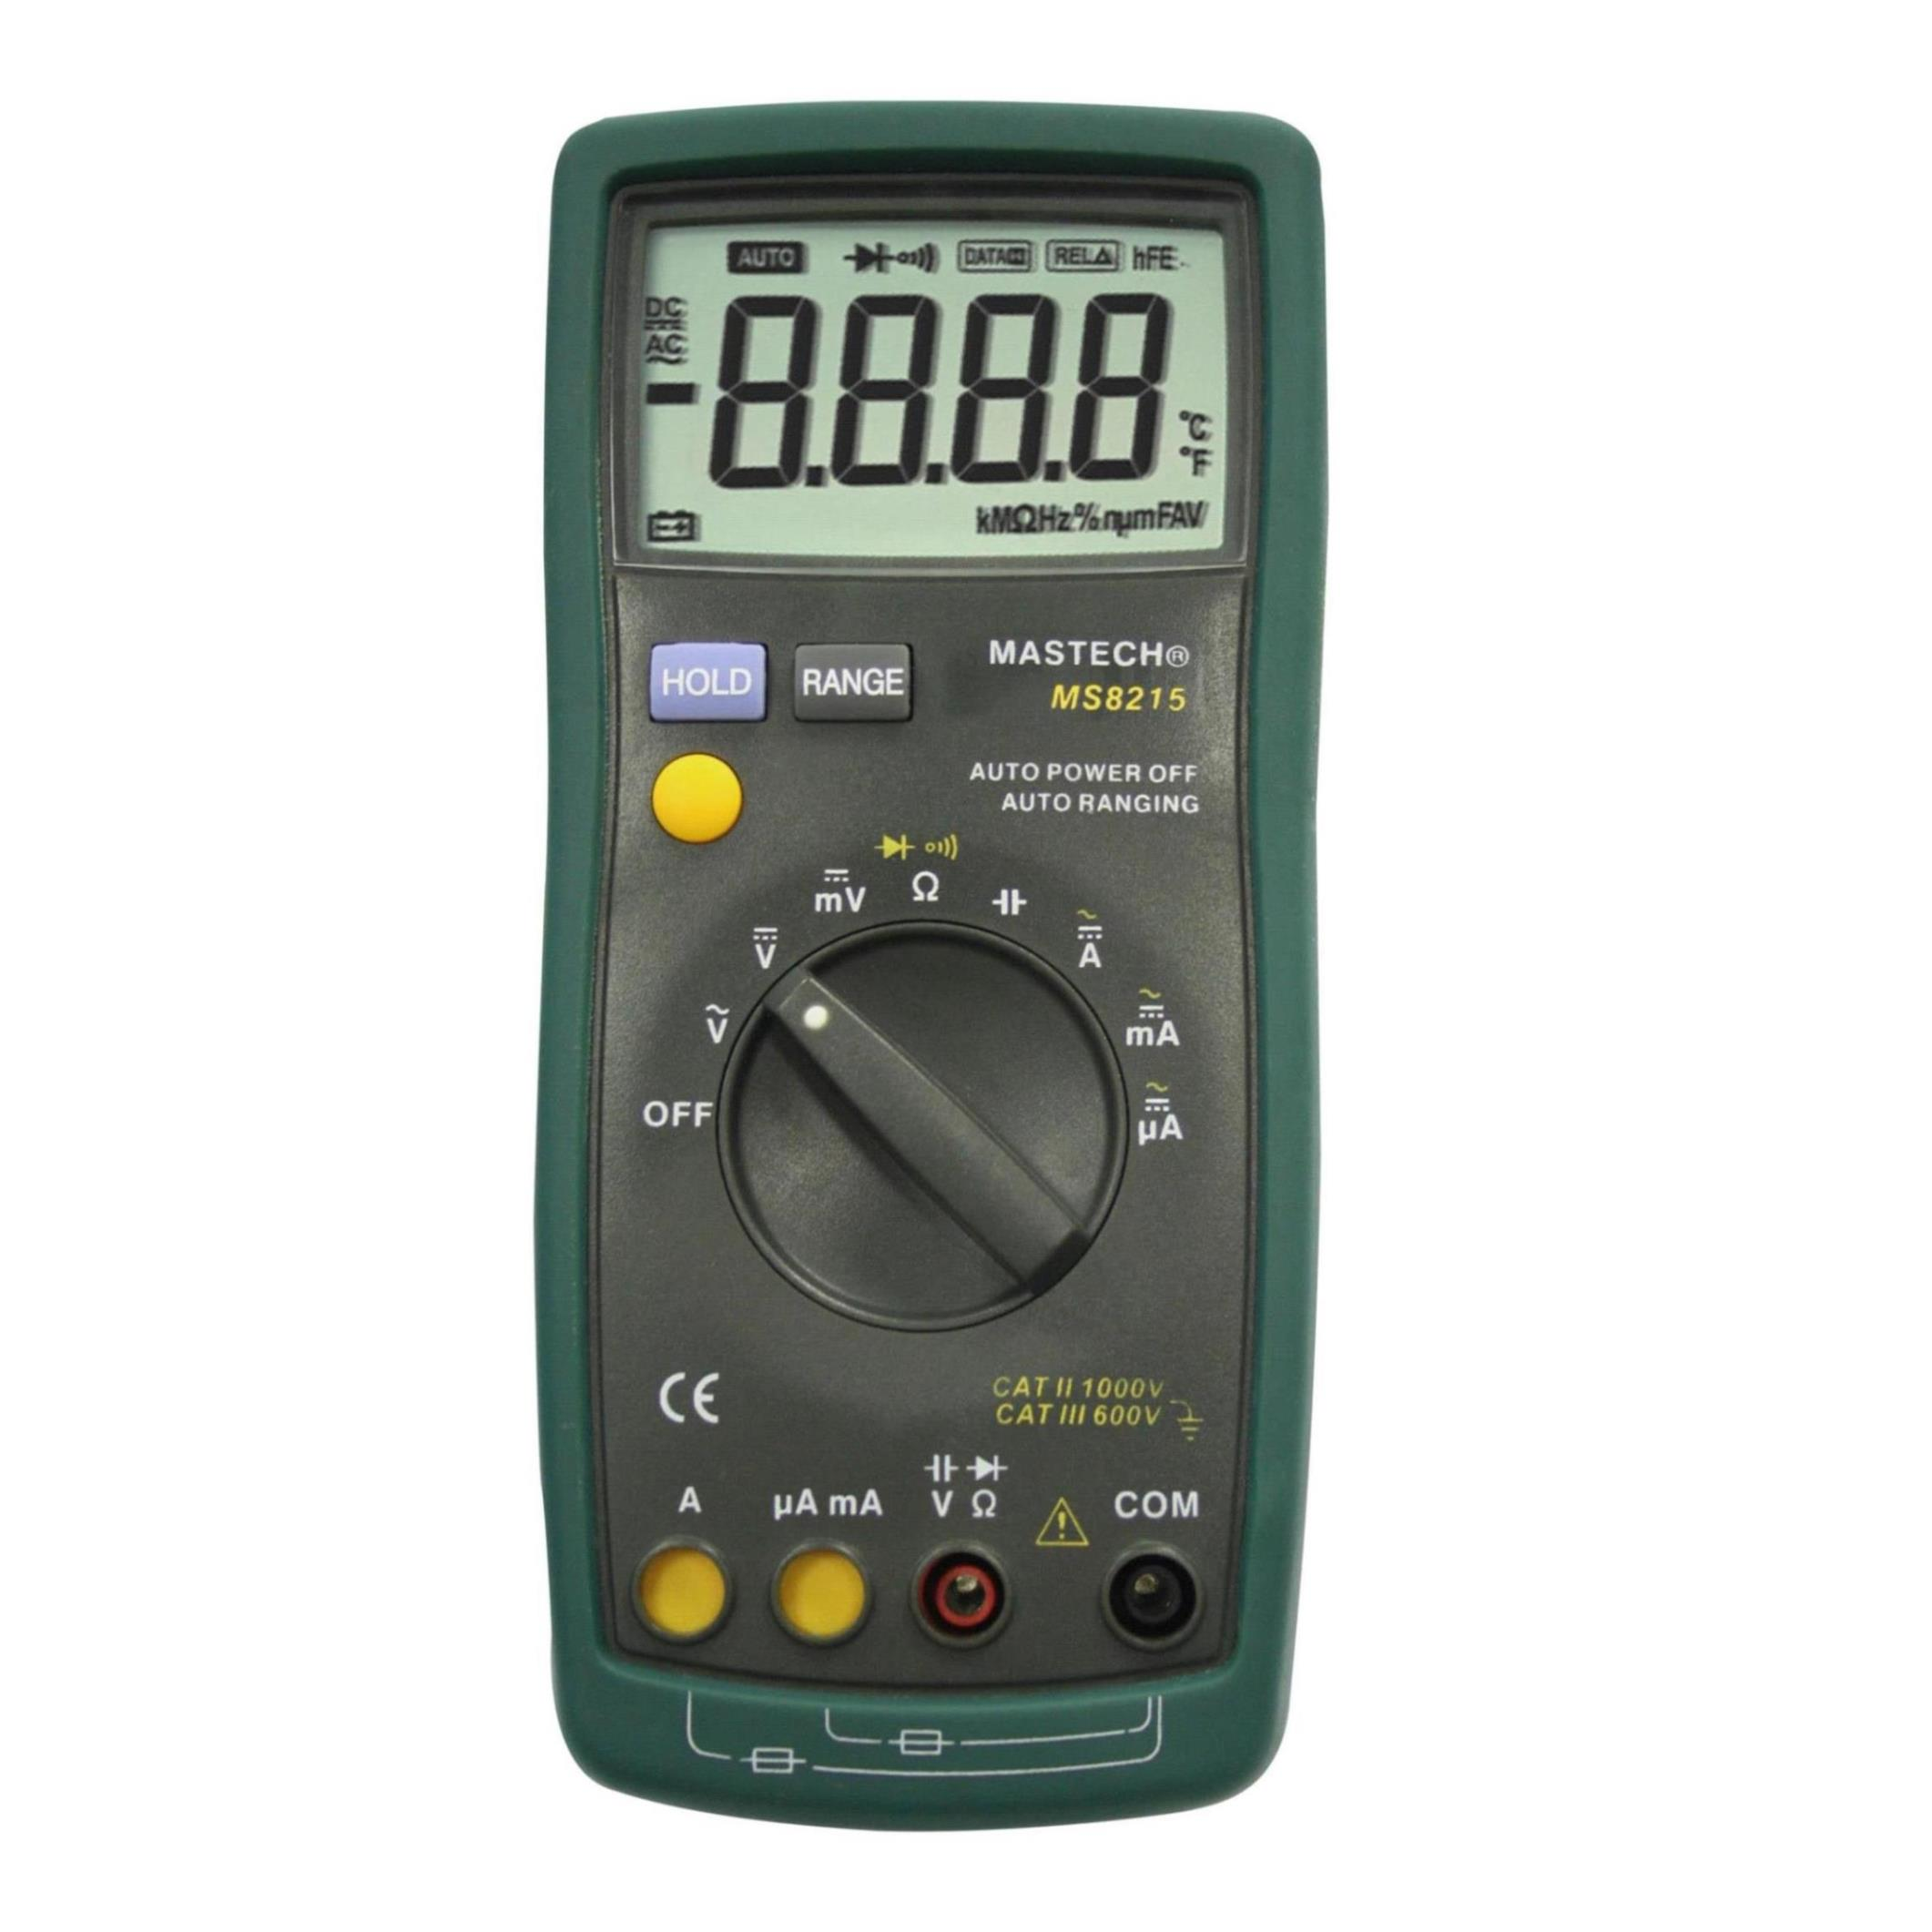 MASTECH MS8215 Digital Multimeter AC/DC Voltage Current Frequency Capacitance Resistance Tester Detector uxcell digital multimeter ac voltage current resistance capacitance frequency temperature tester meter 600mv 6v 60v 600v 1000v